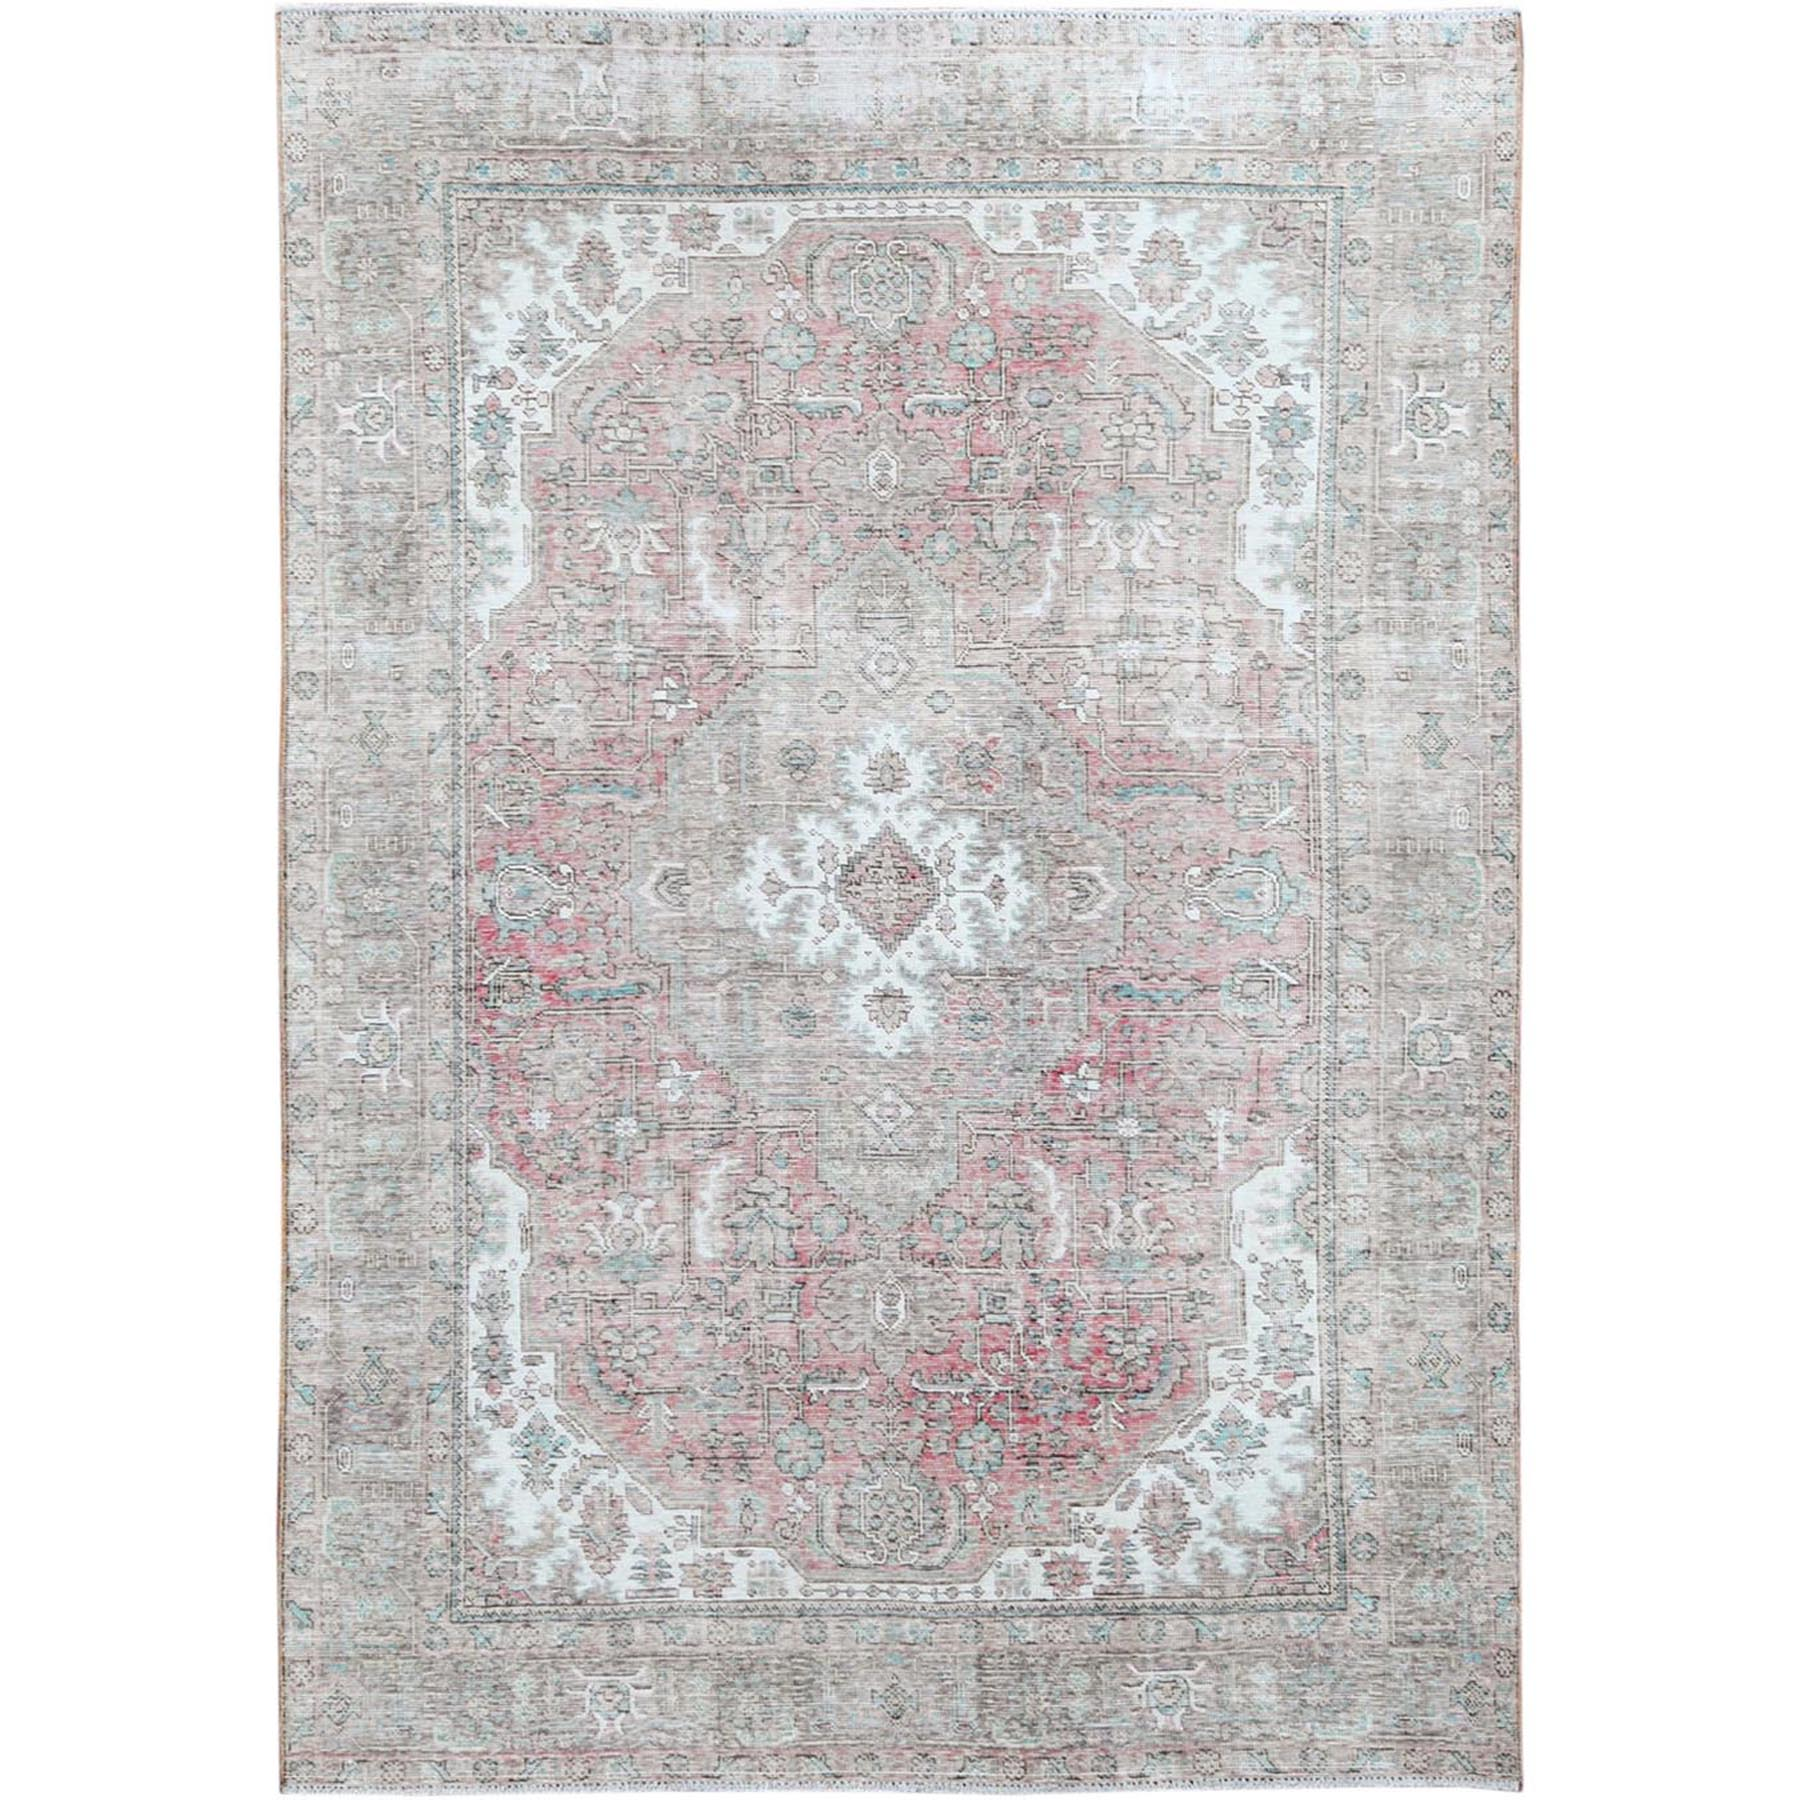 Transitional Collection Hand Knotted Pink Rug No: 1115446